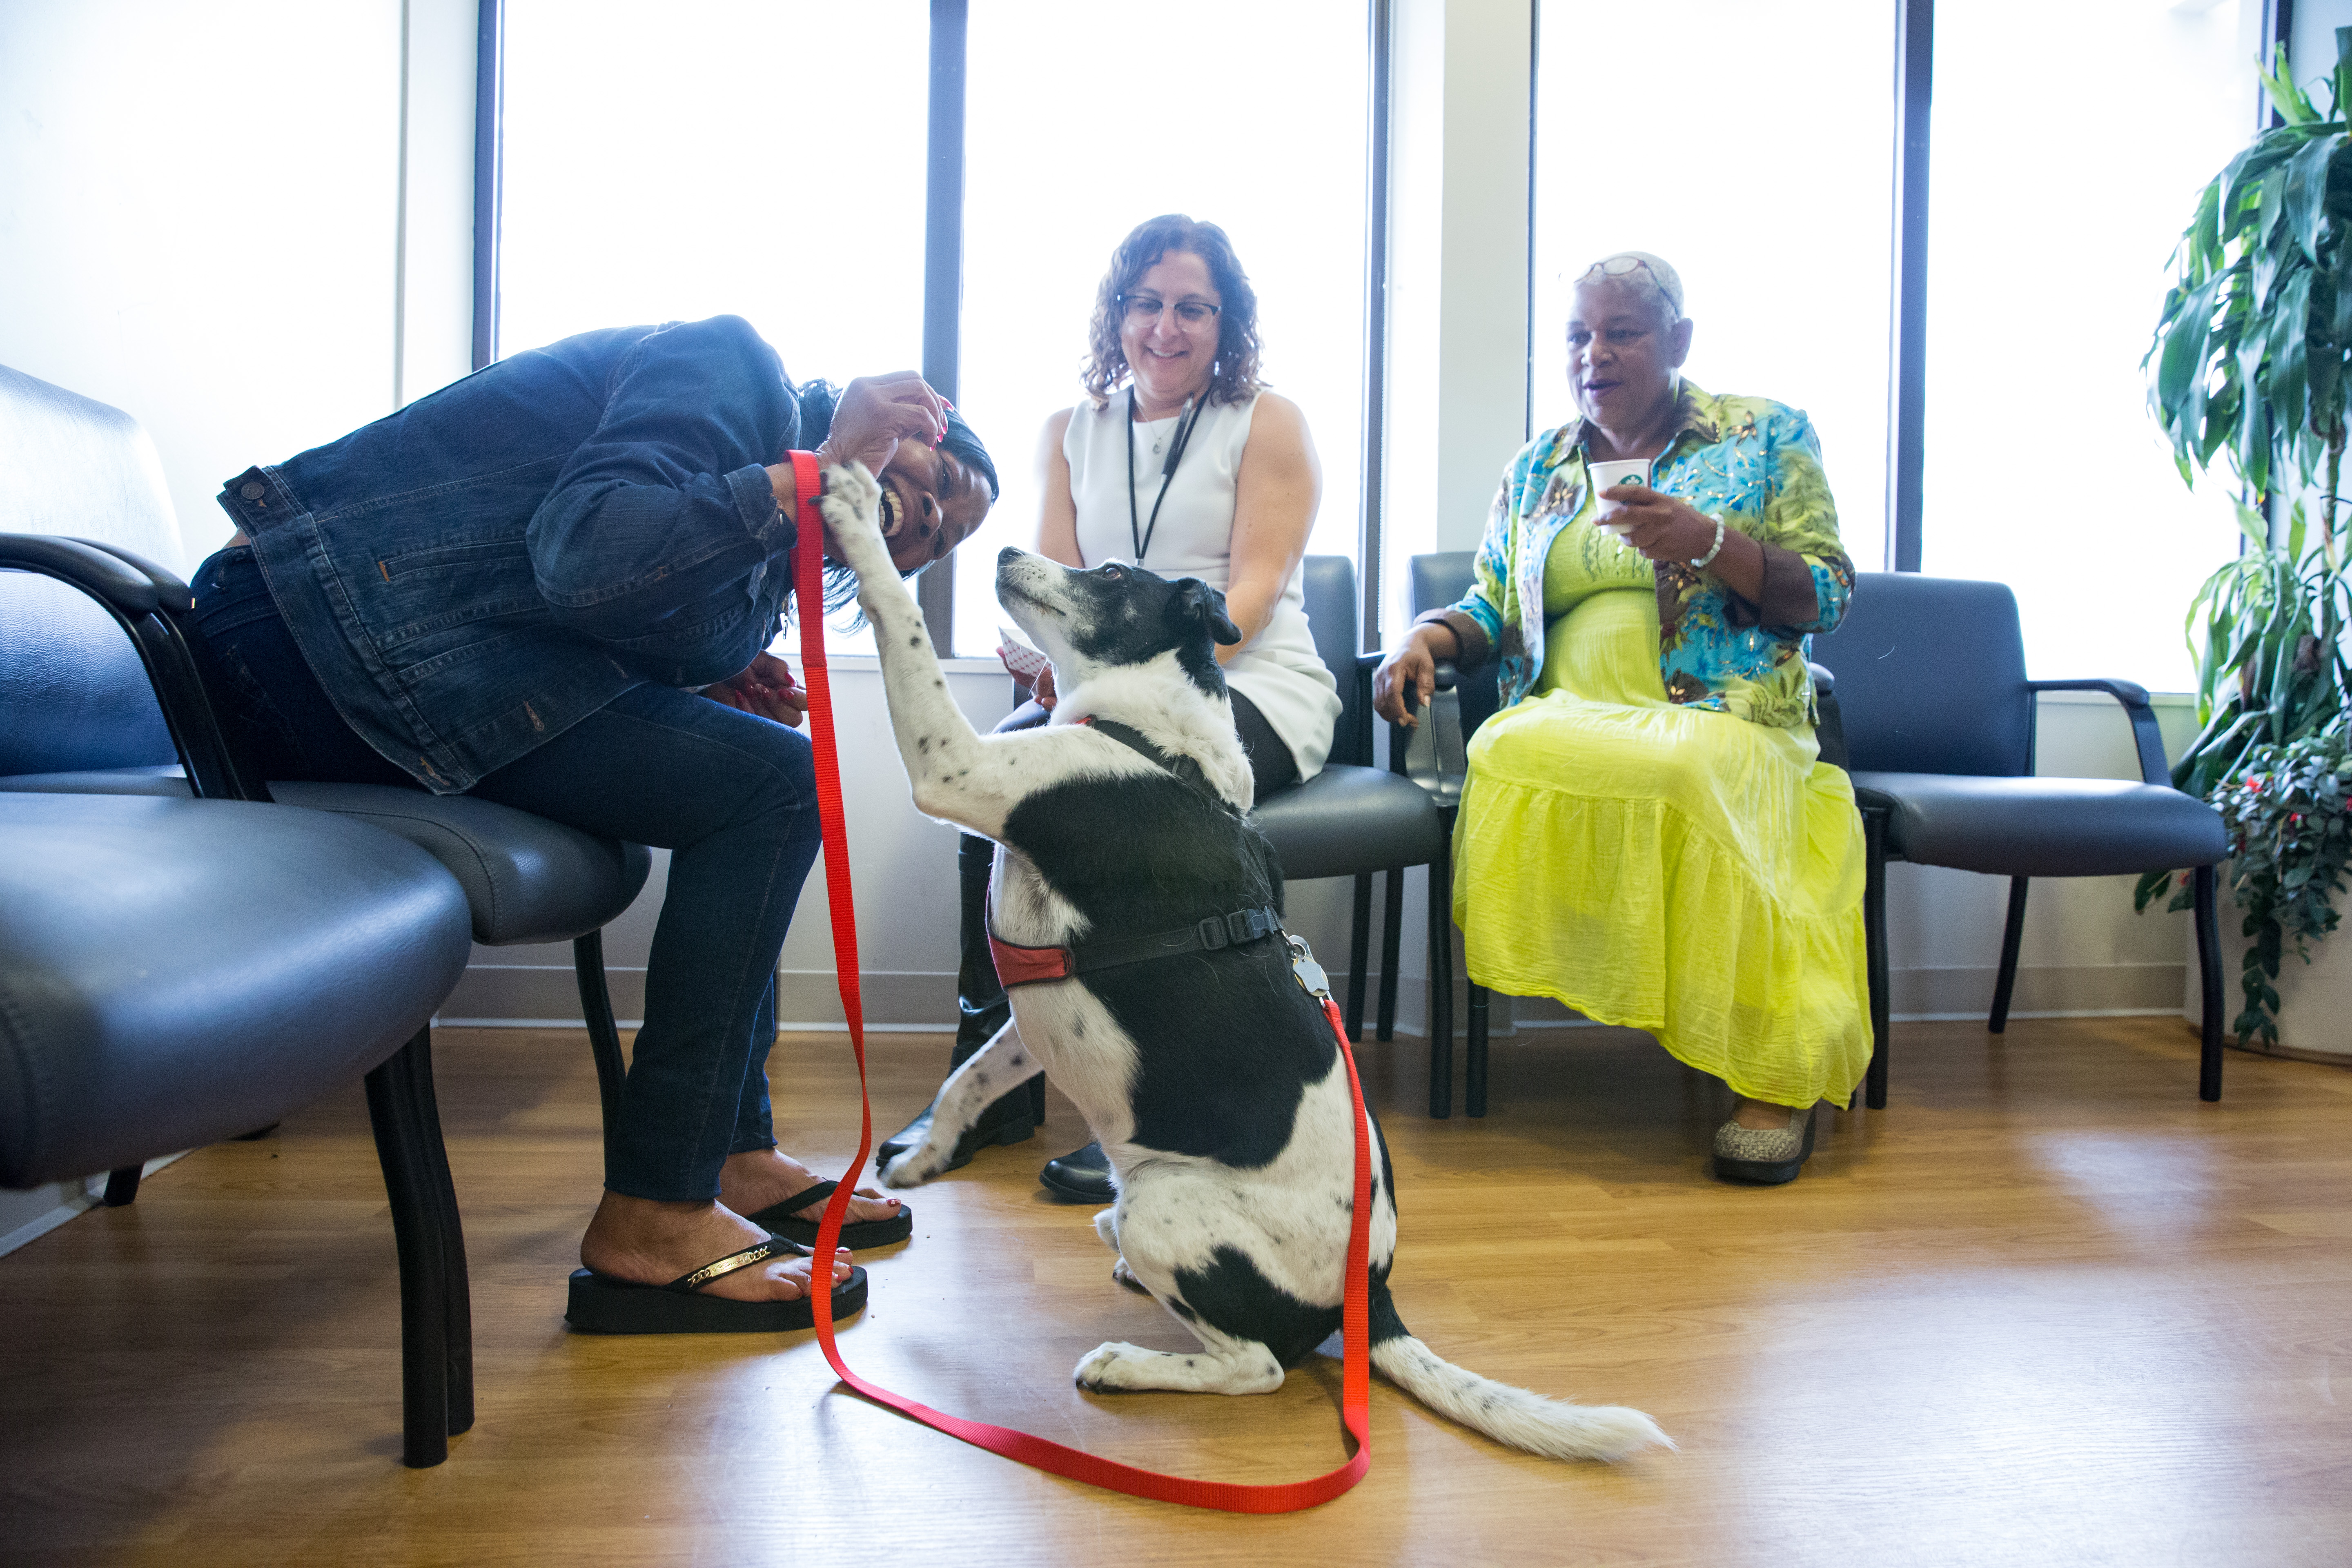 IMPORTED: www_commonwealthfund_org____media_images_newsletters_transforming_care_2016_june_ucsf_20160622_therapy_dog_selects_004_w_100_25.jpg